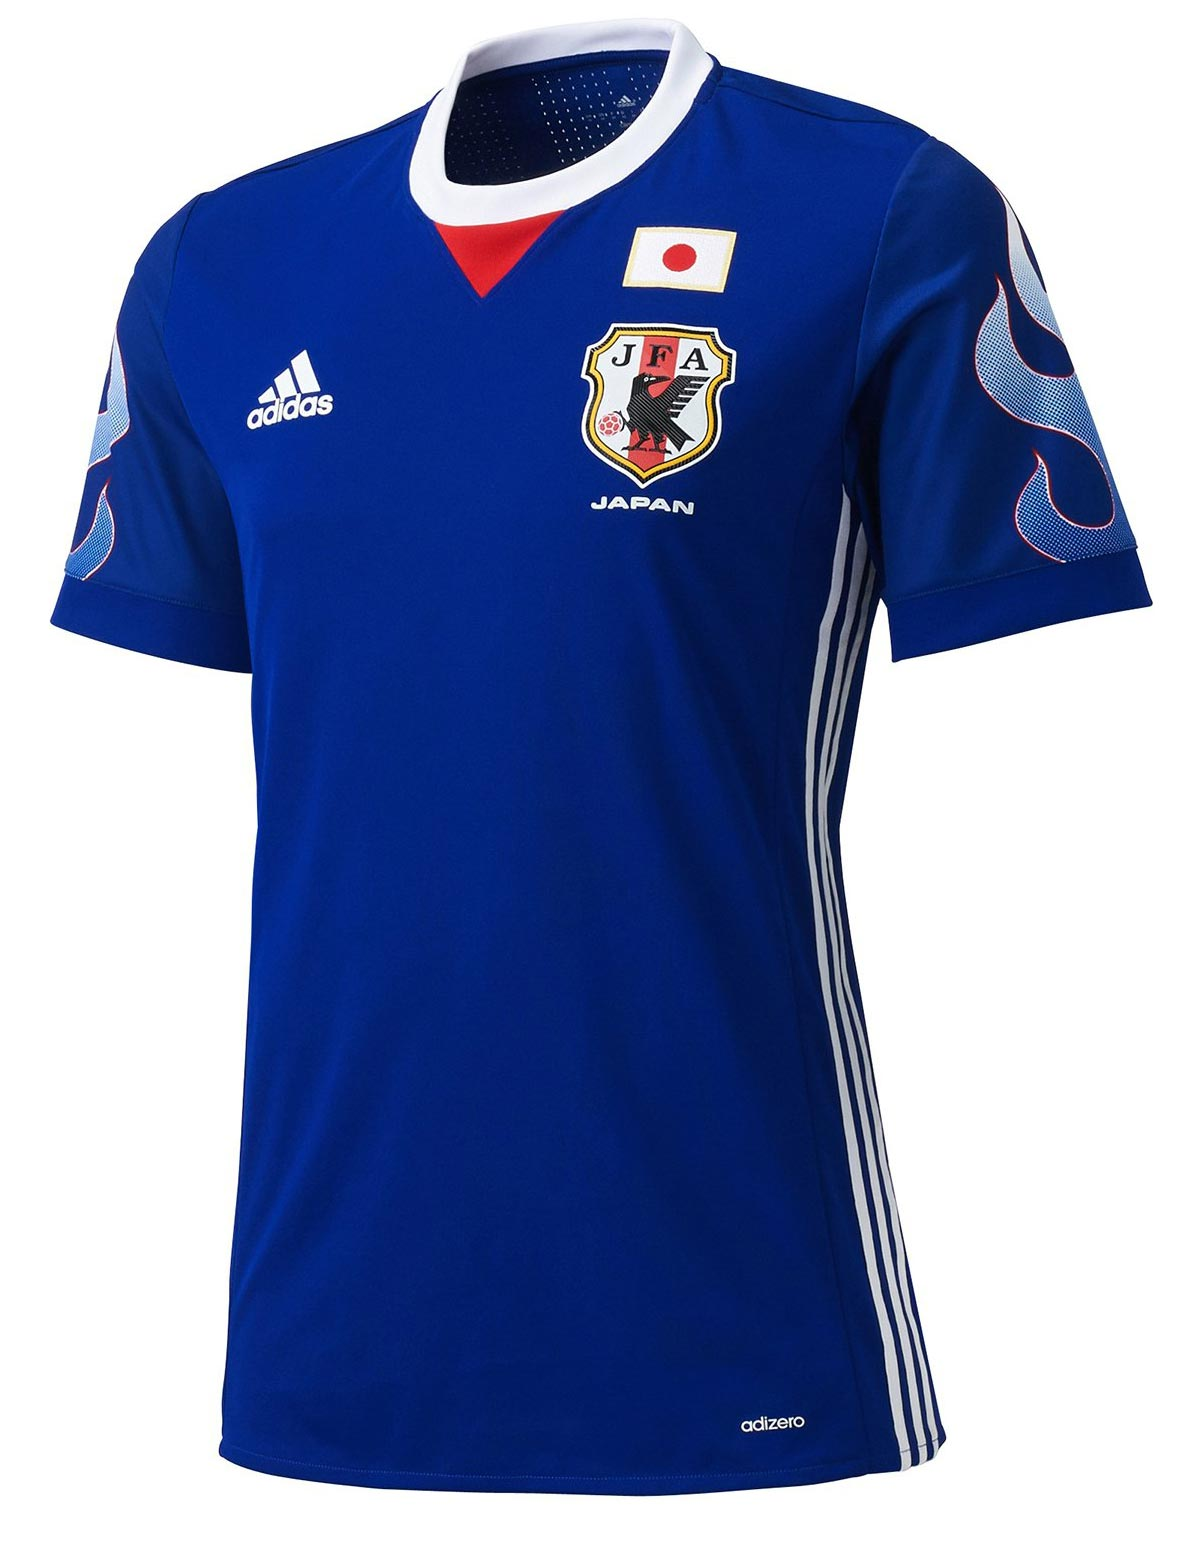 The Japan  Kit Introduces An All New Graphic Element While